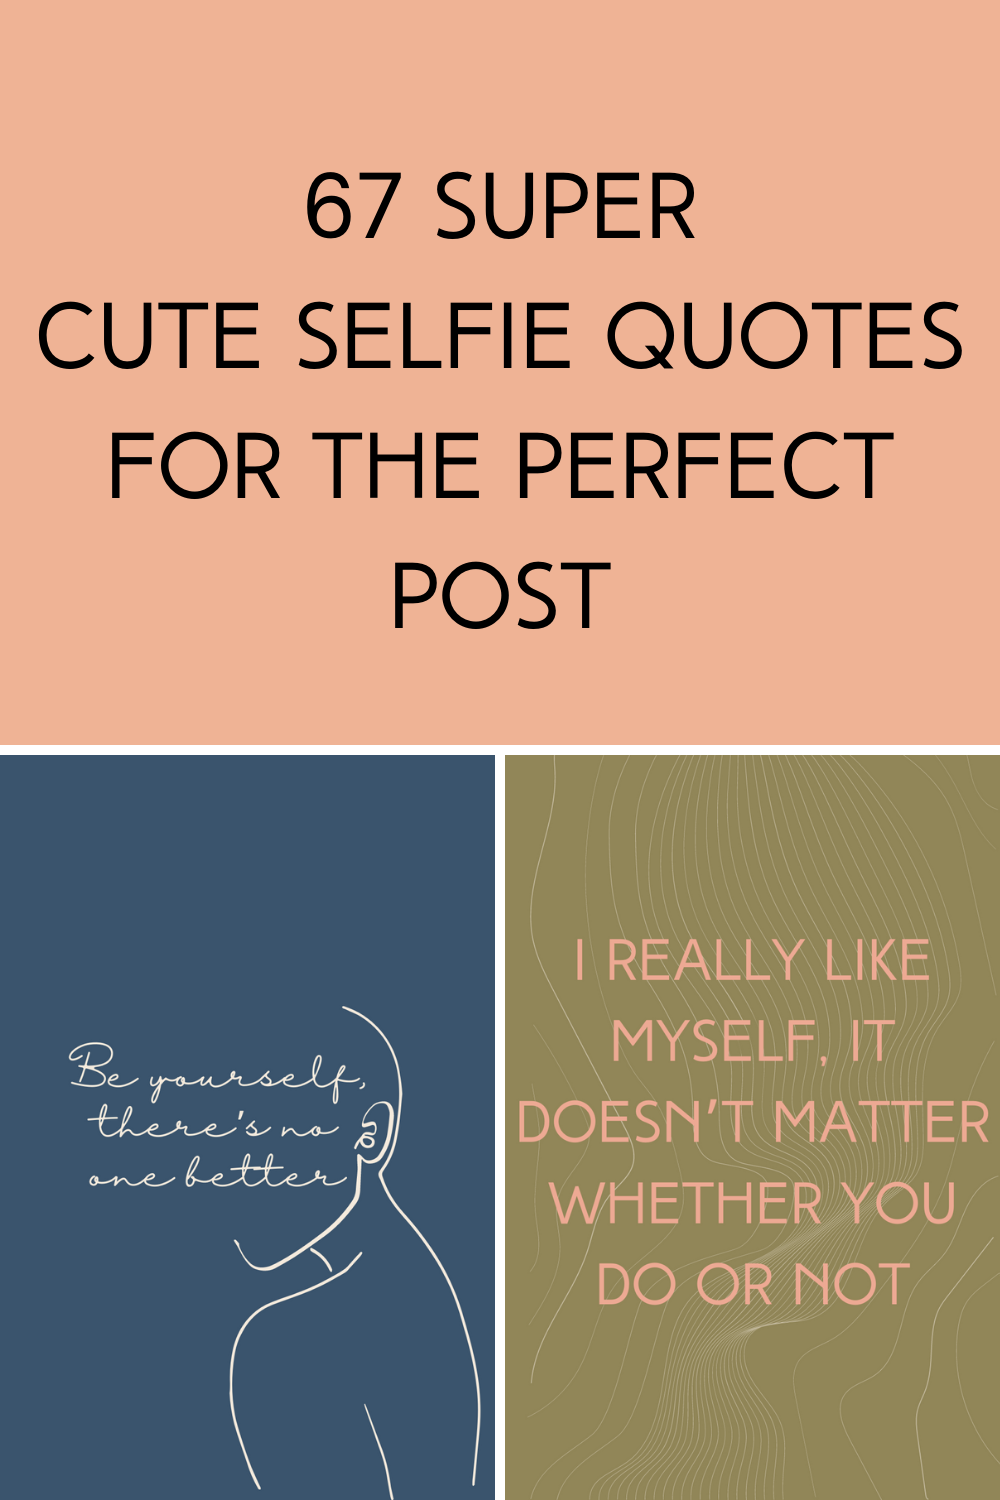 cute selfie quotes